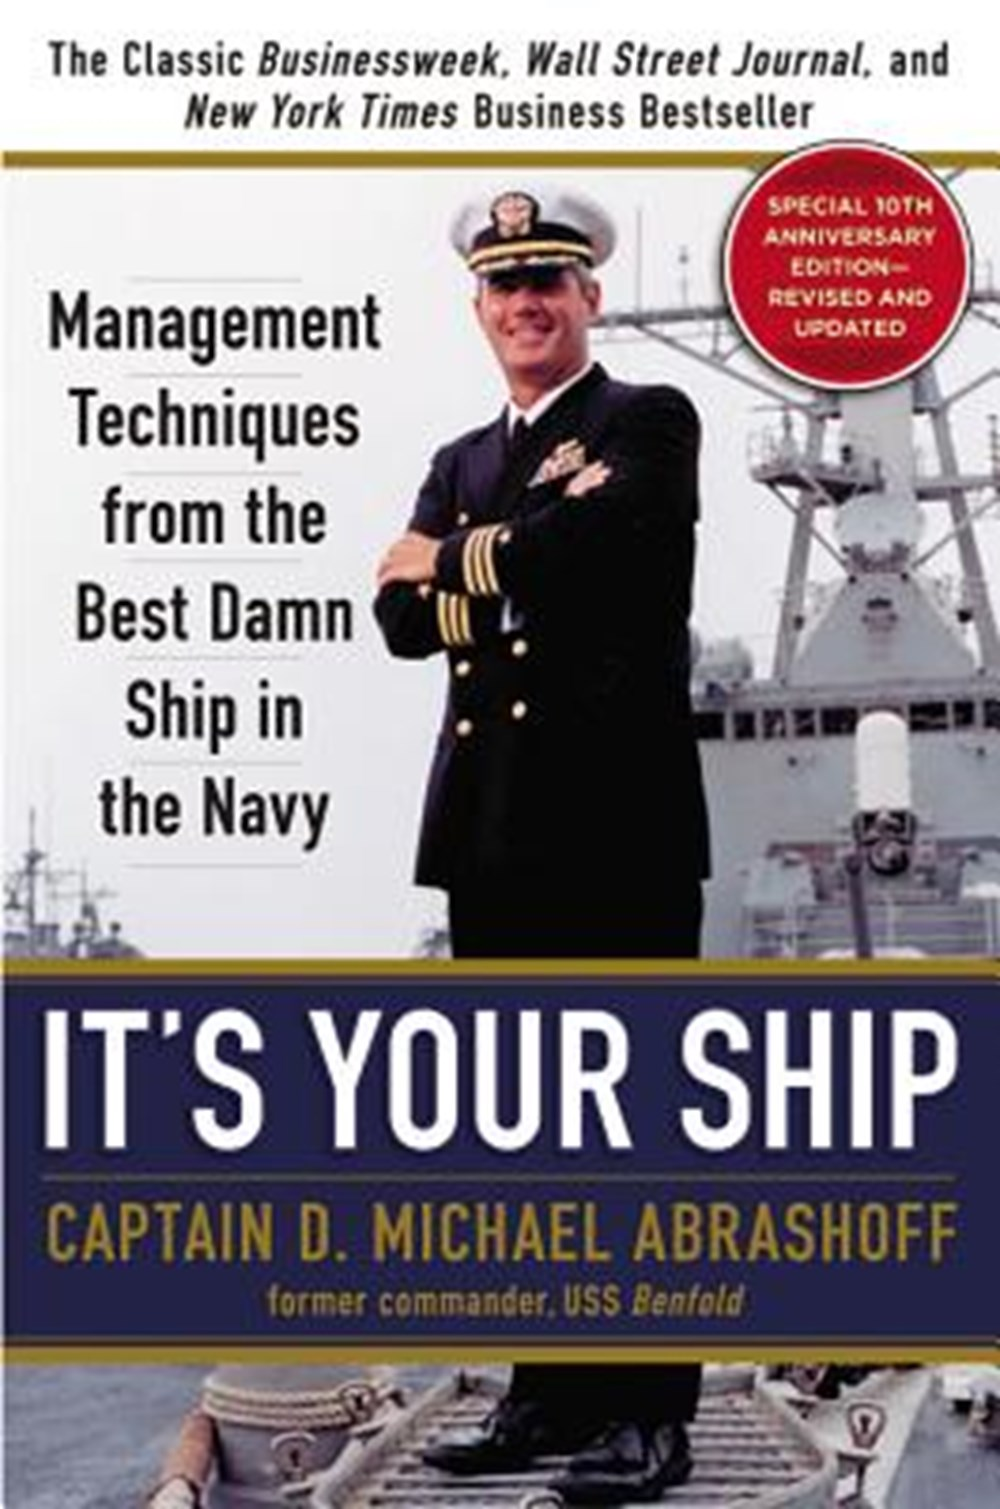 It's Your Ship Management Techniques from the Best Damn Ship in the Navy